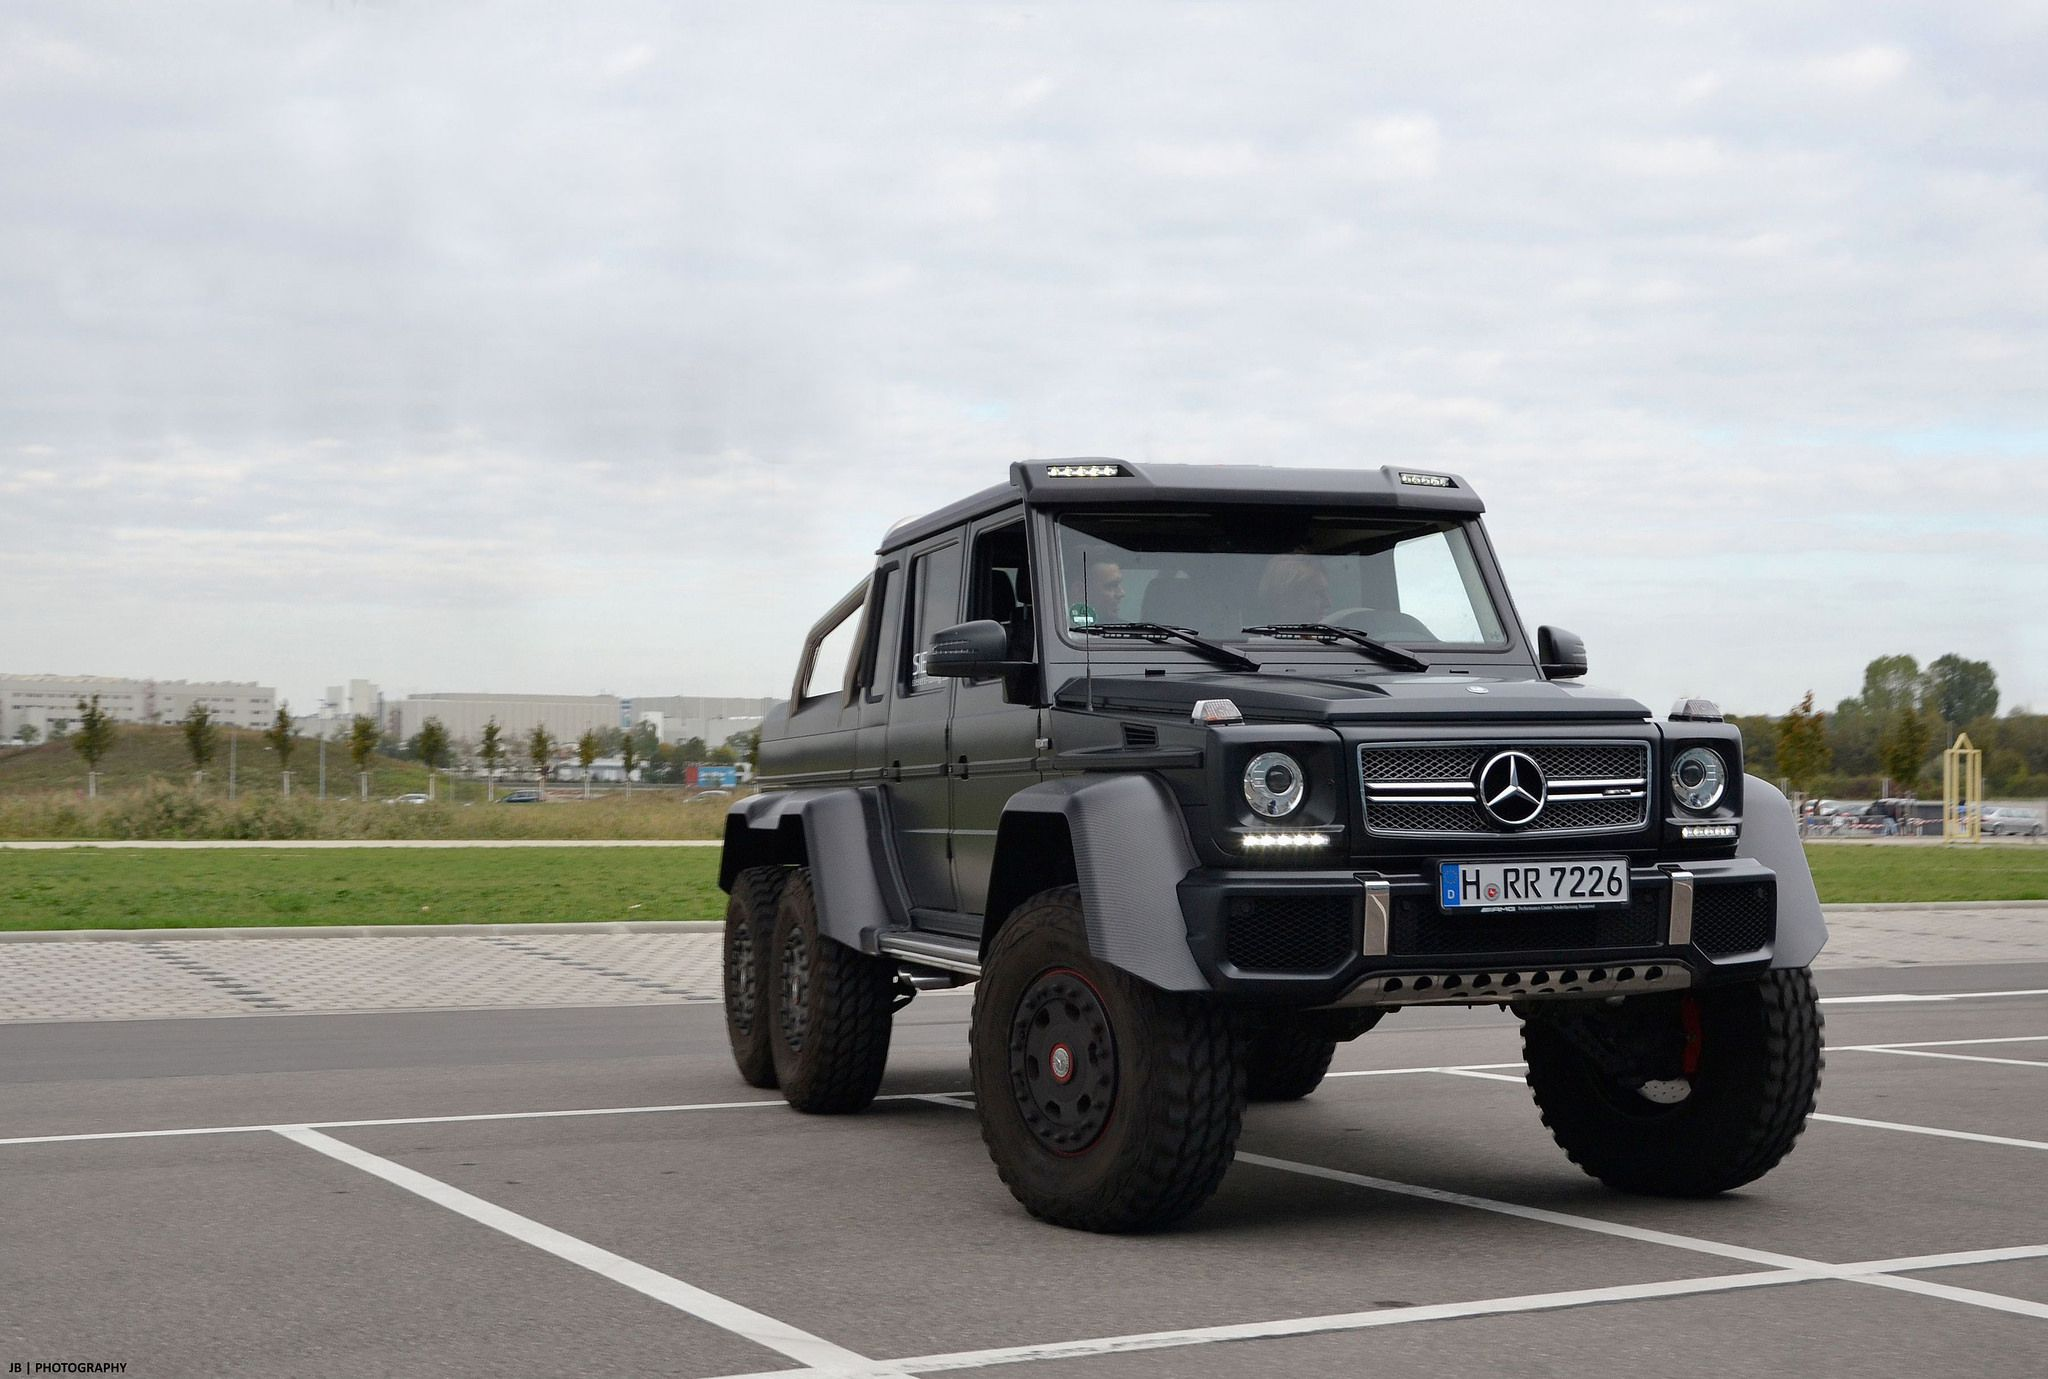 Mercedes-Benz G63 AMG 6x6 - military version